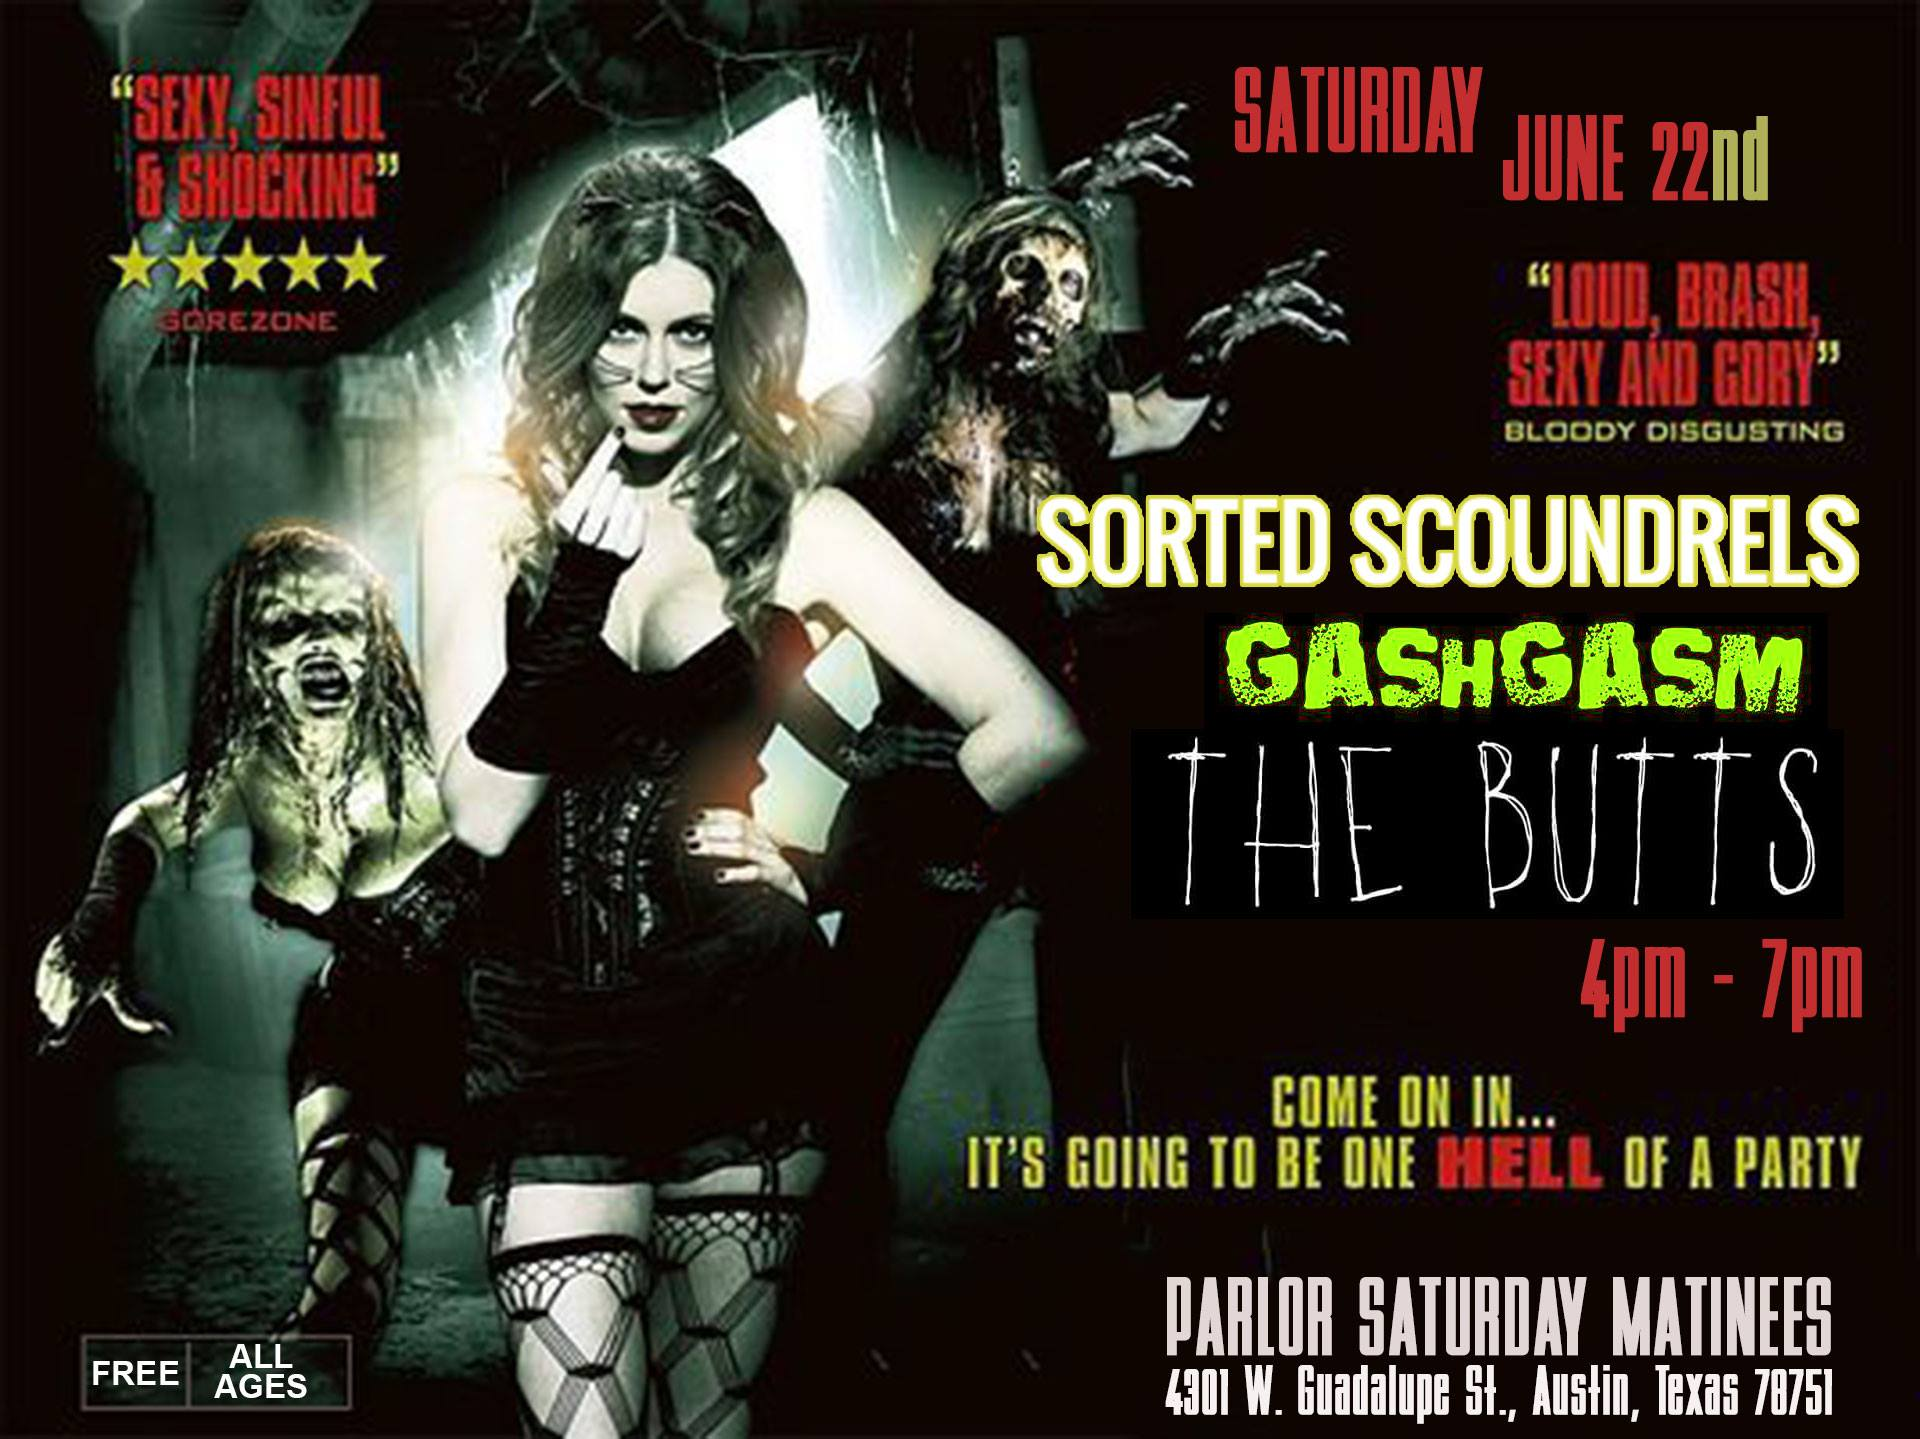 Sorted Scoundrels, Gashgasm, The Butts - Saturday Matinee